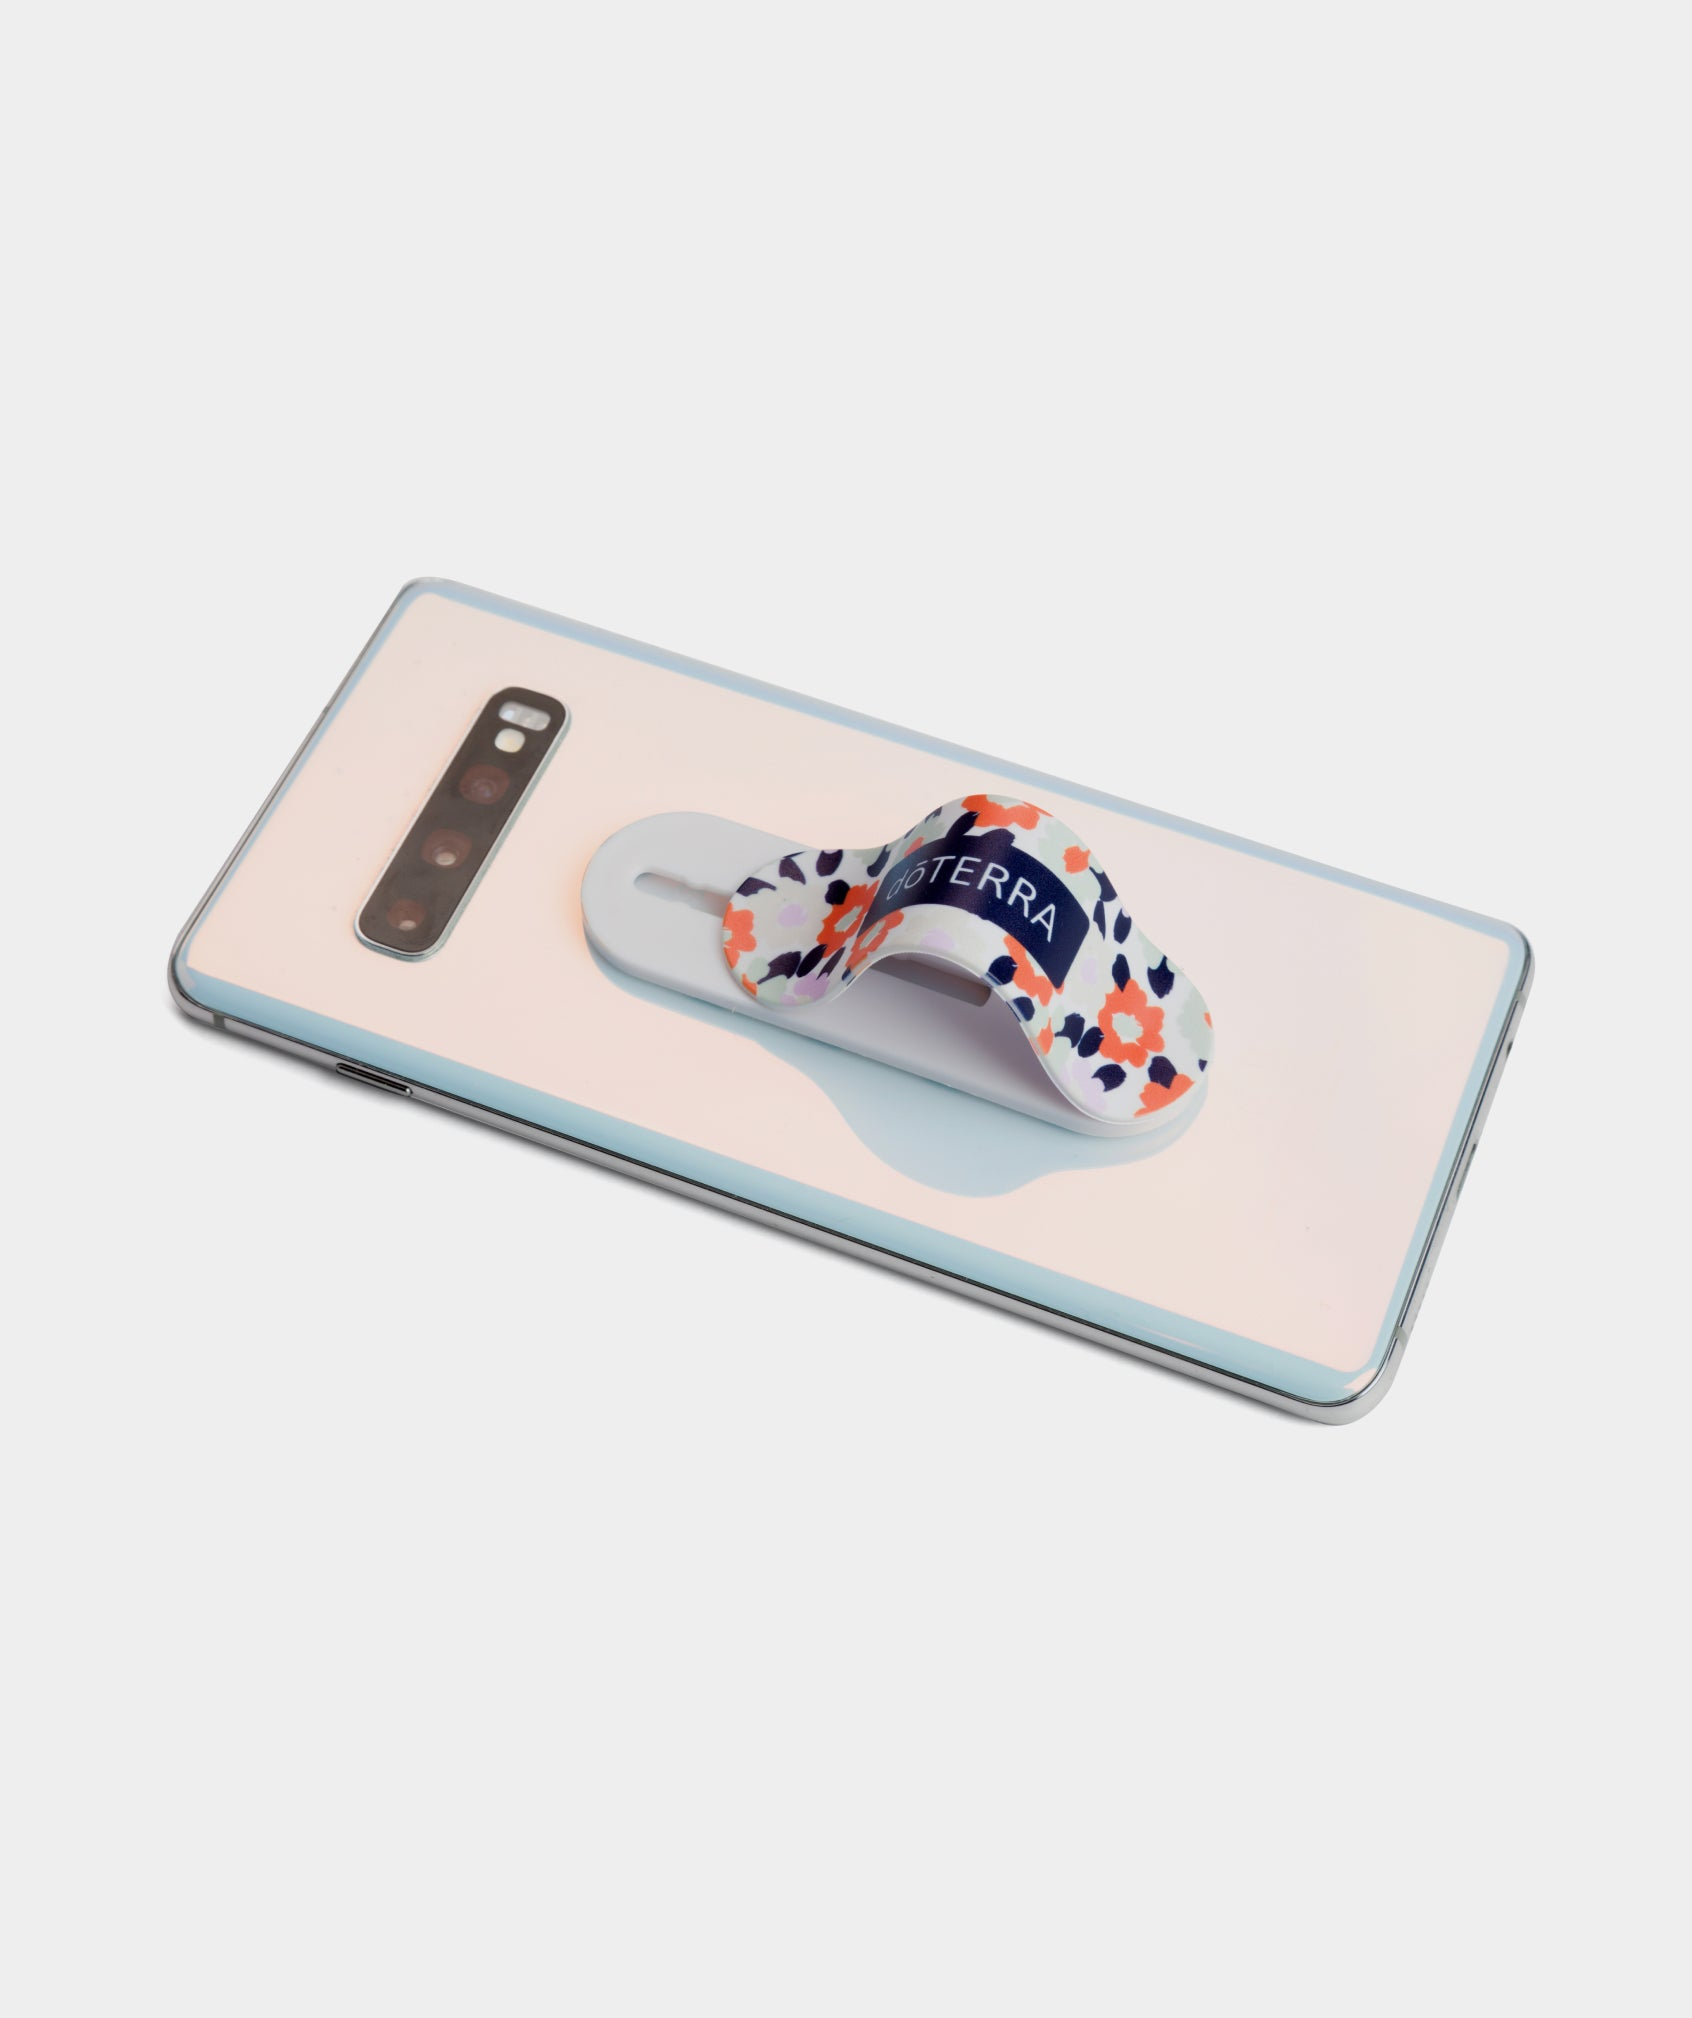 Momostick Phone Grip